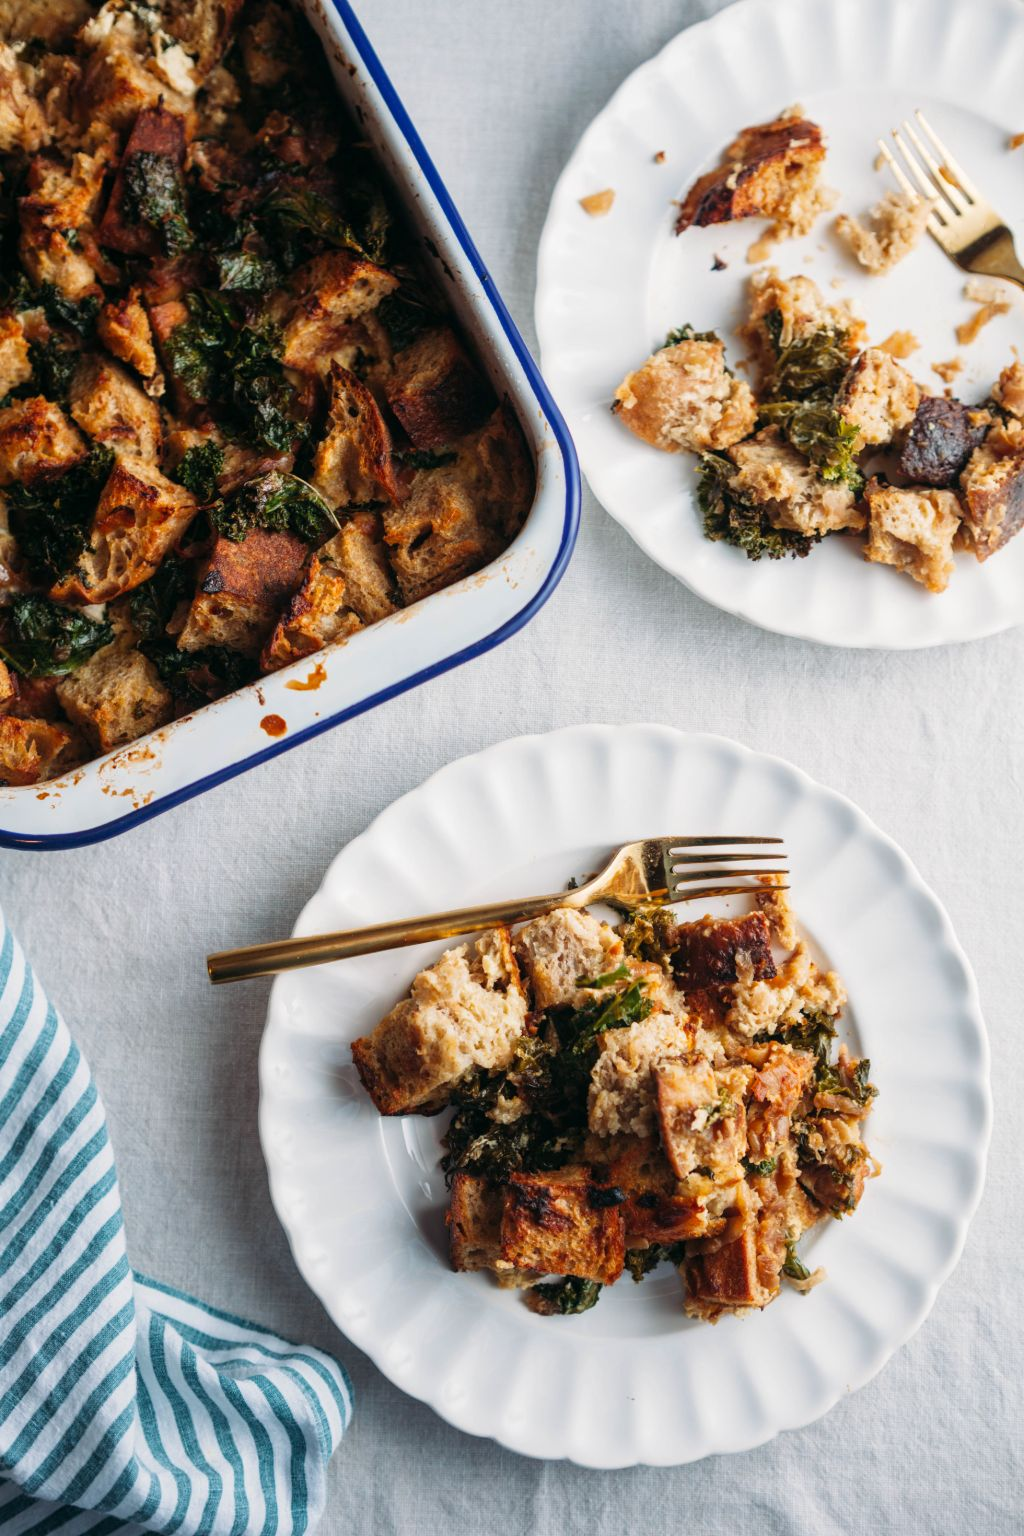 Savory Bread Pudding with Caramelized Onions and Kale - Tastemaker Blog